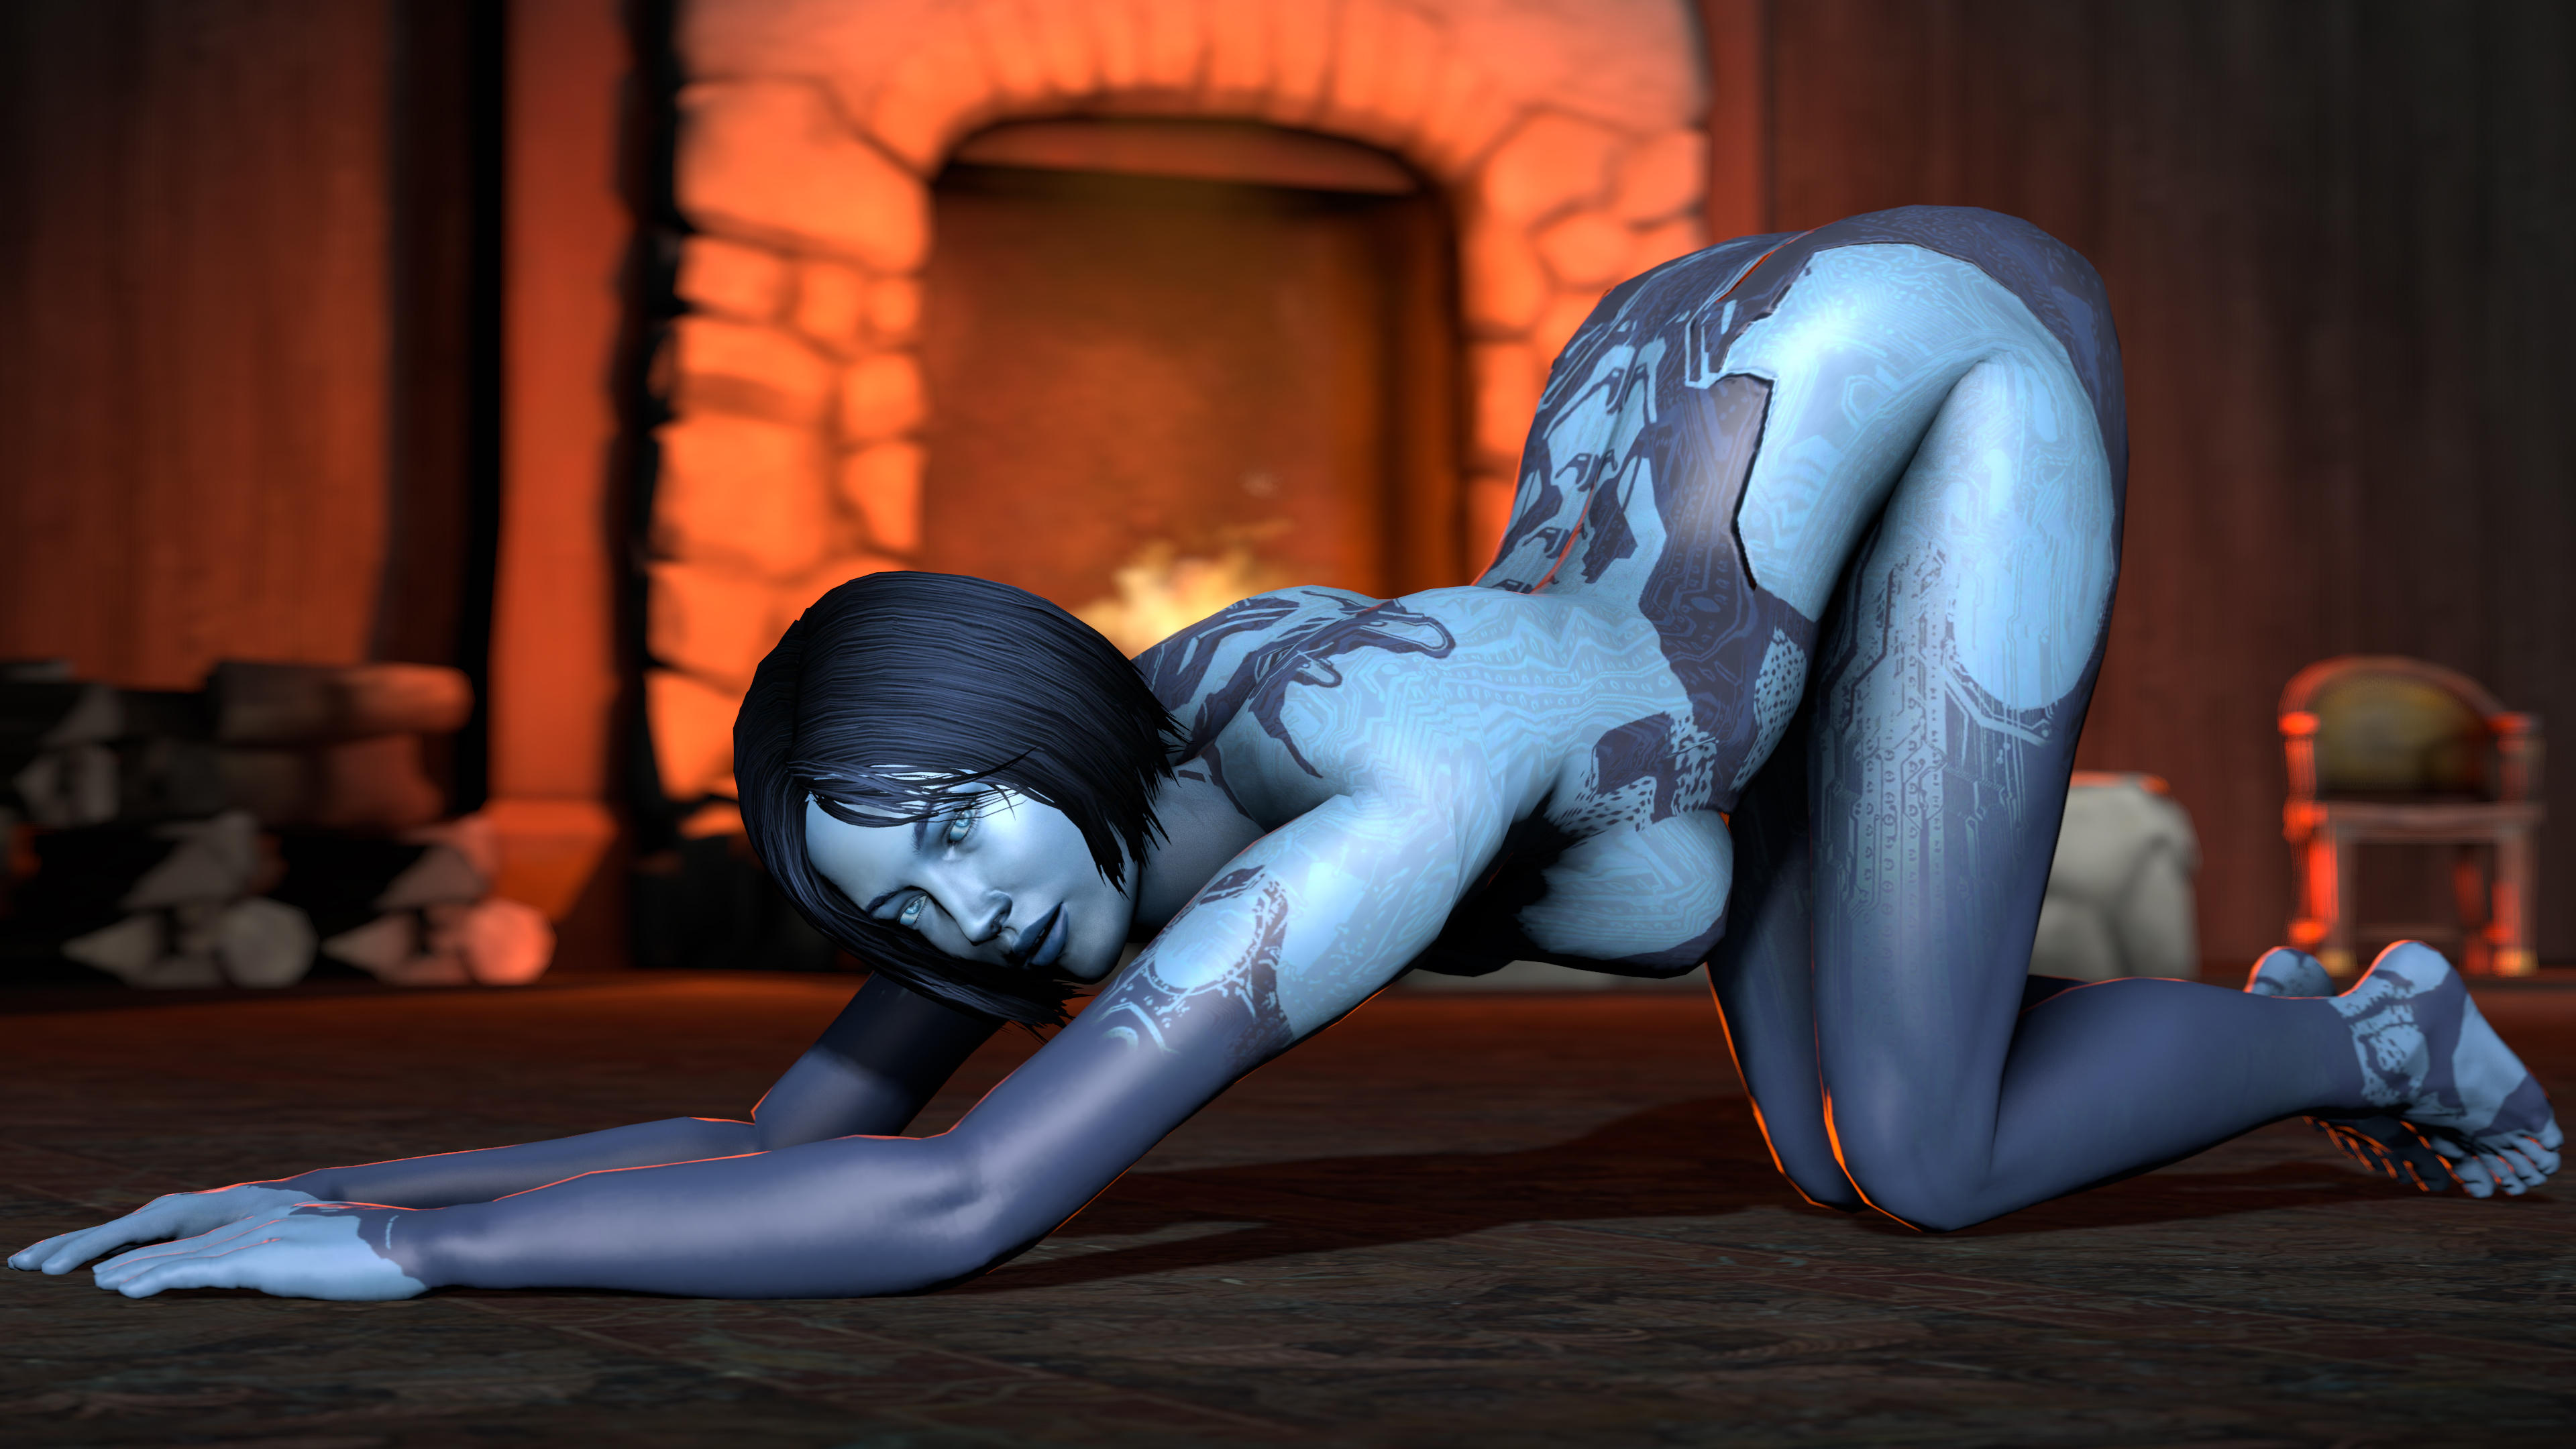 Cortana porno nude video